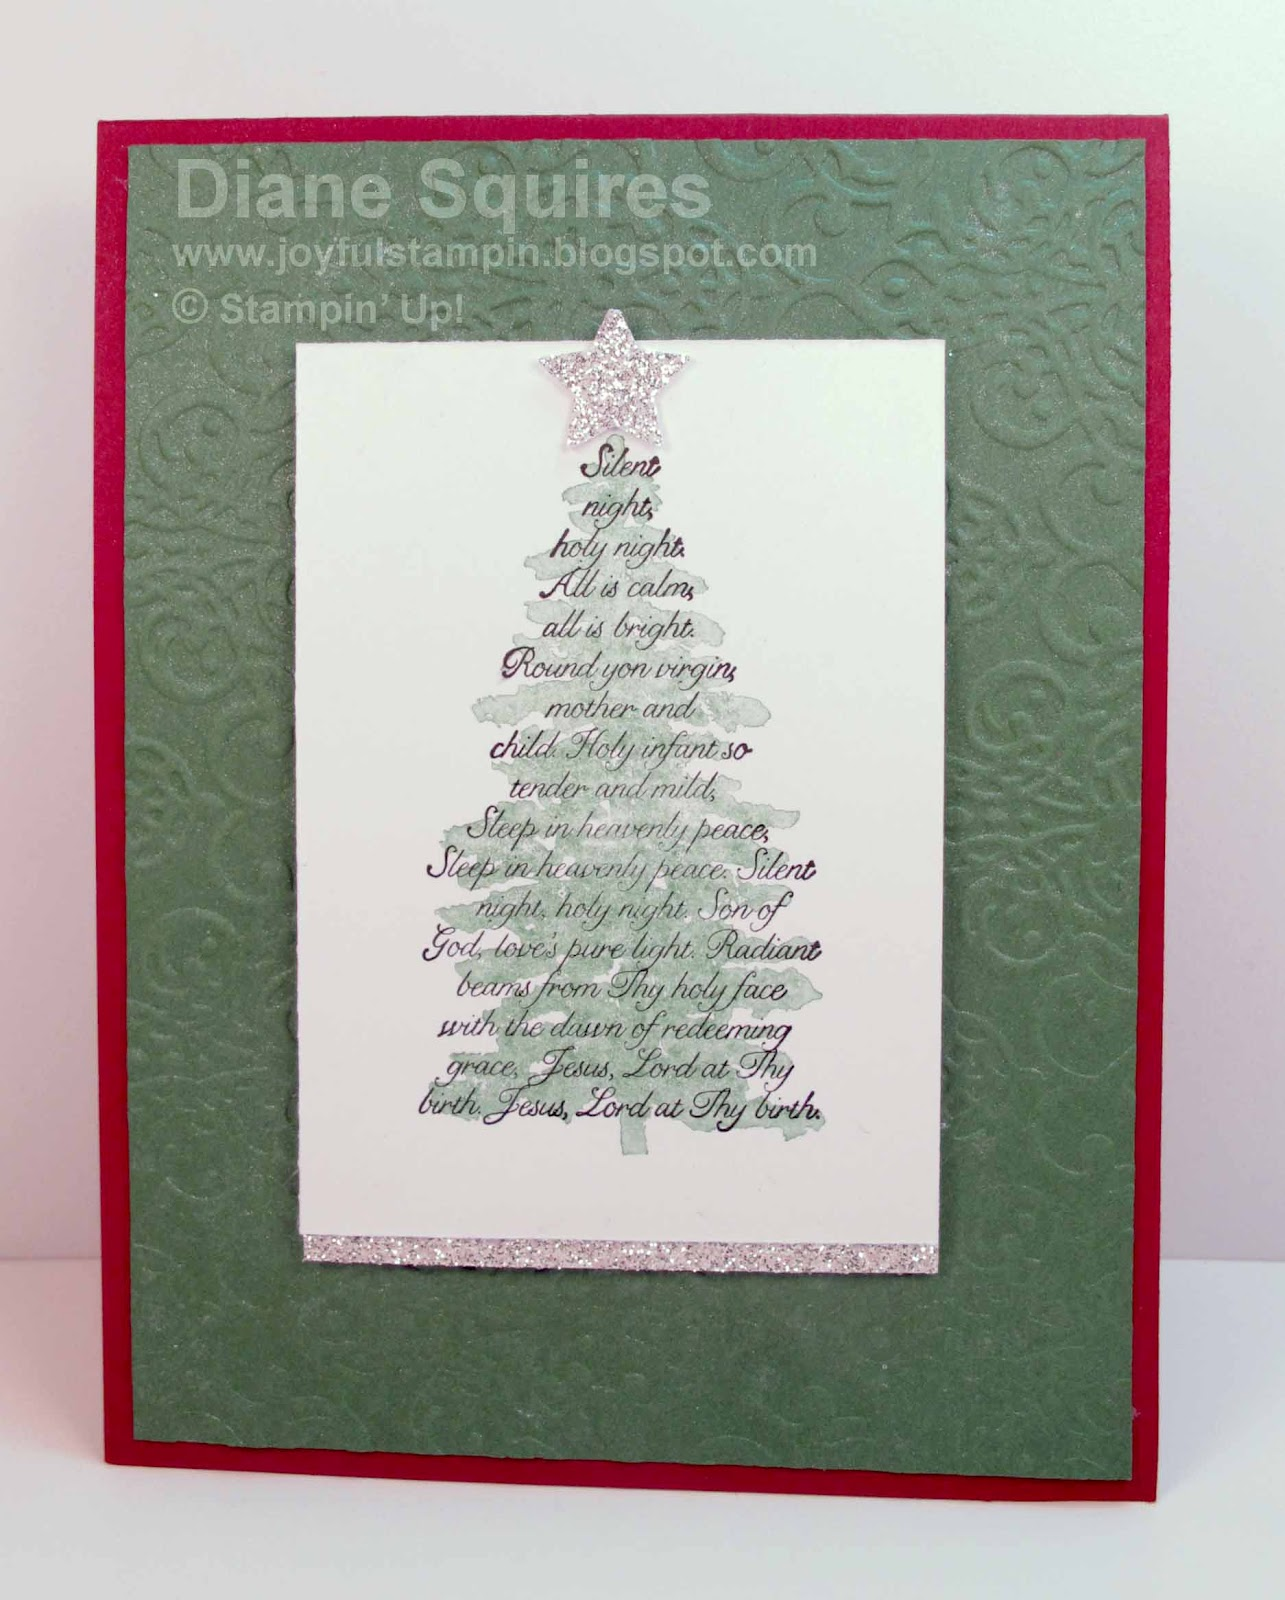 Joyful Stampin: Evergreen Stampin' Up! Christmas Card